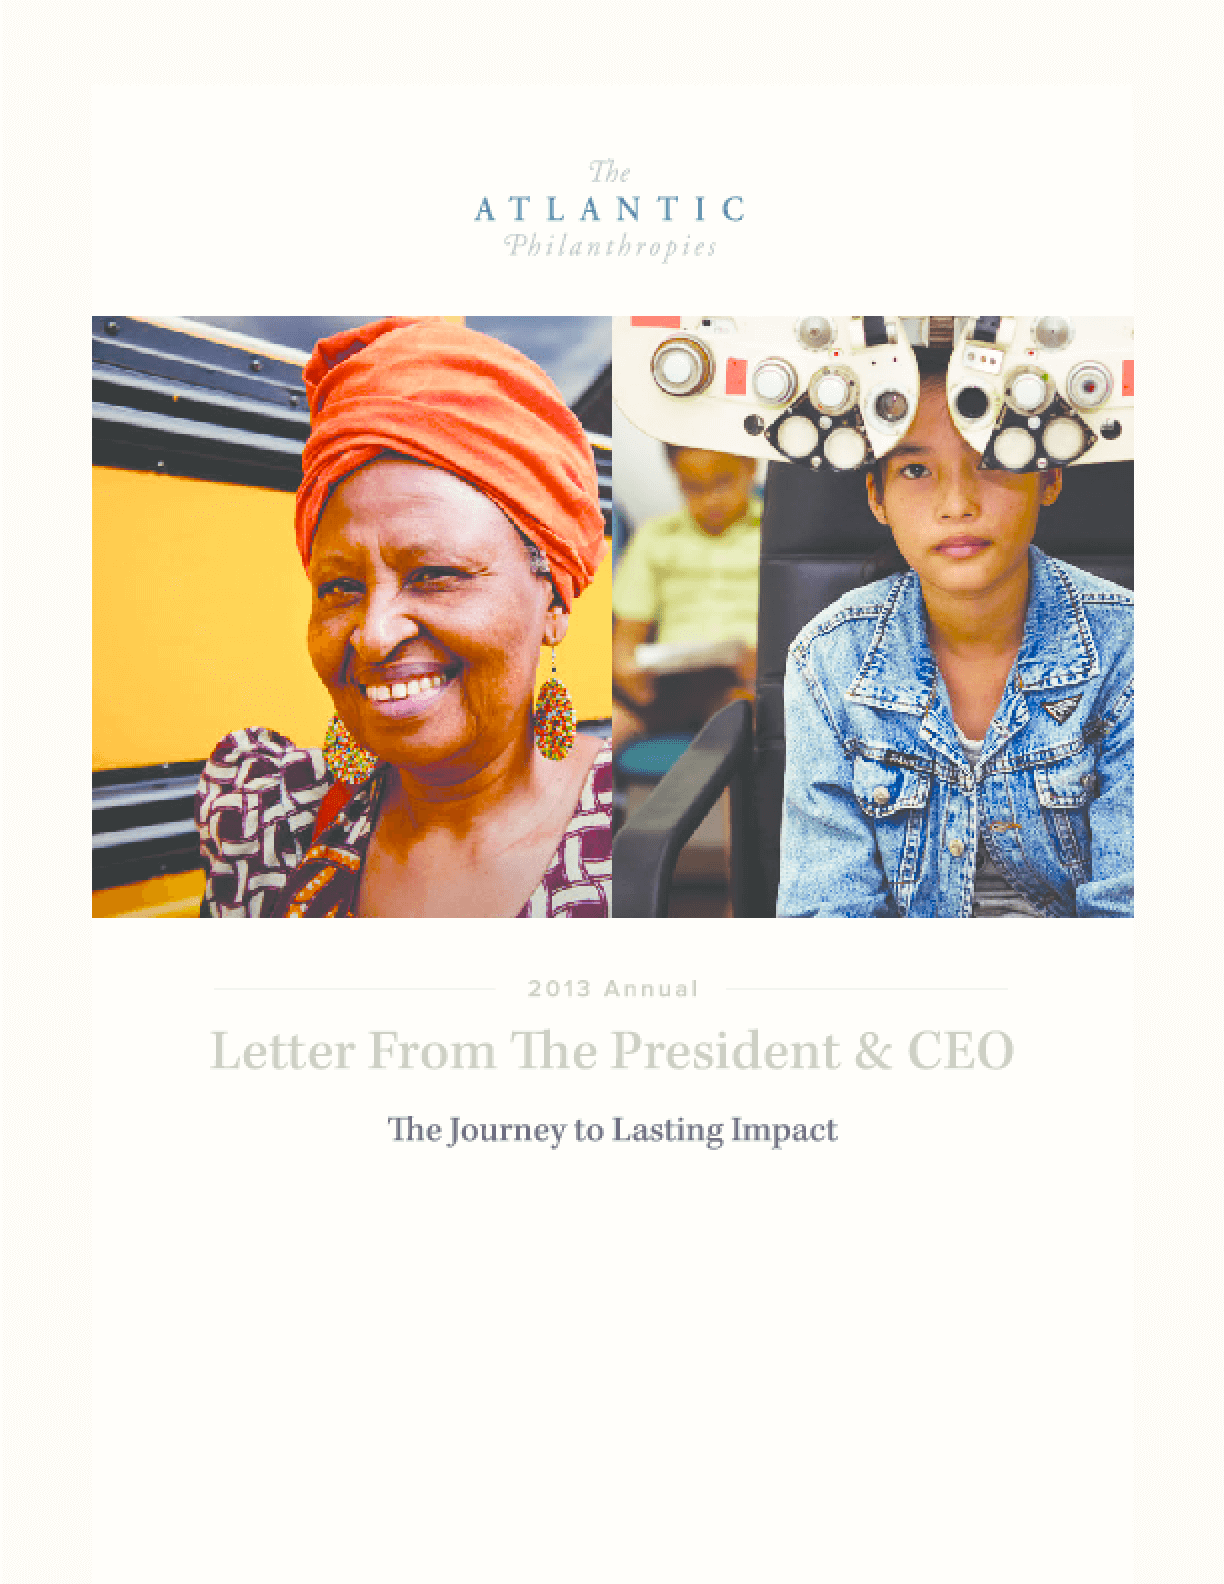 2013 Annual Letter From the President and CEO: The Journey to Lasting Impact